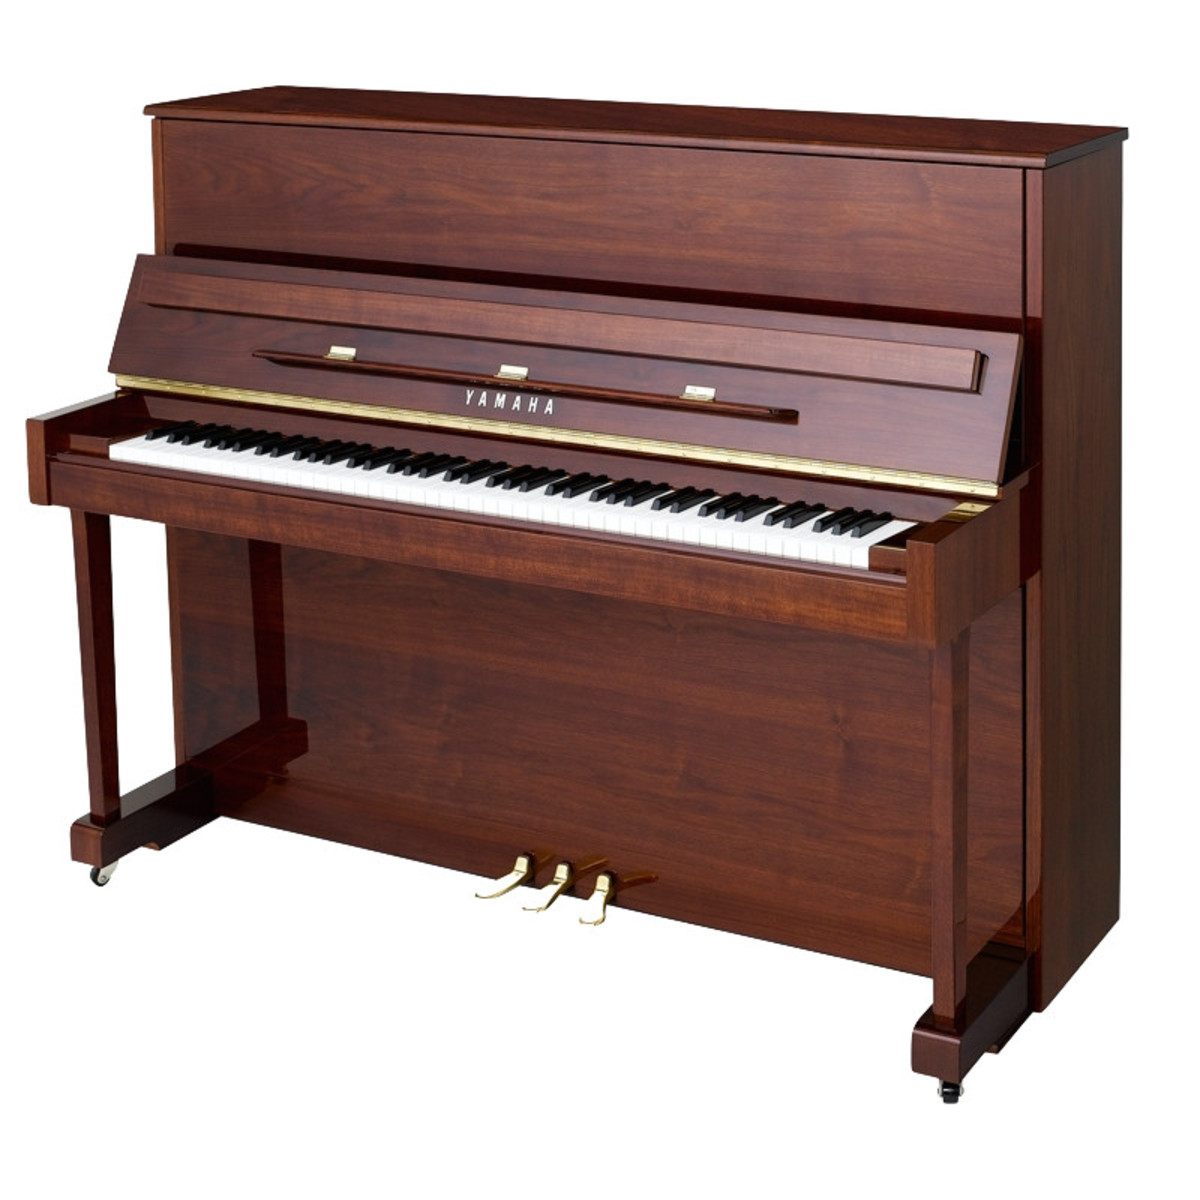 Yamaha b3 upright acoustic piano simulated mahogany for Yamaha piano upright